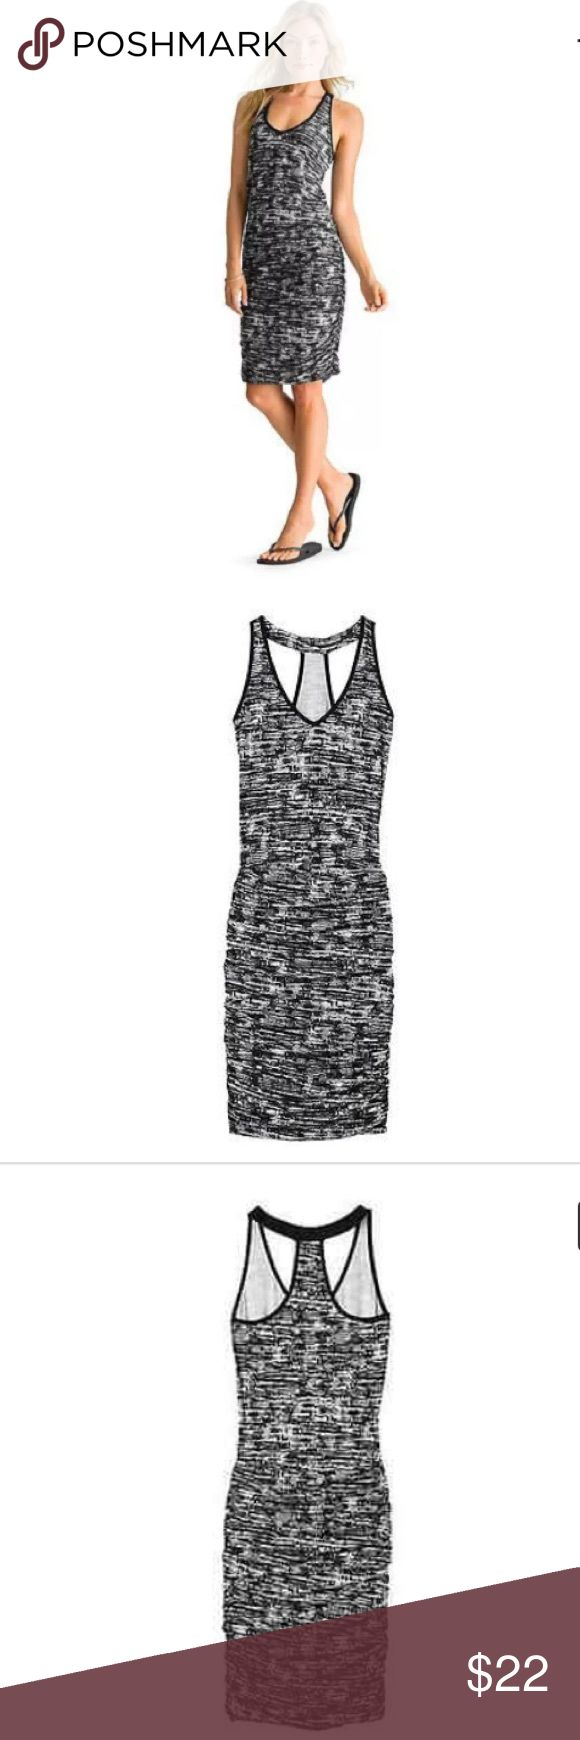 """Athleta Women's Printed Tee Ruched Yoga Dress XS Athleta Women's printed tee racerback Yoga Dress.                                                                       Size: XS. Color: Asphalt.                                          Very good condition! Super comfy and soft. Relaxed top, ruched Skirt.                                       Measurements: Chest 16"""", Total length 36"""" Athleta Dresses Midi"""